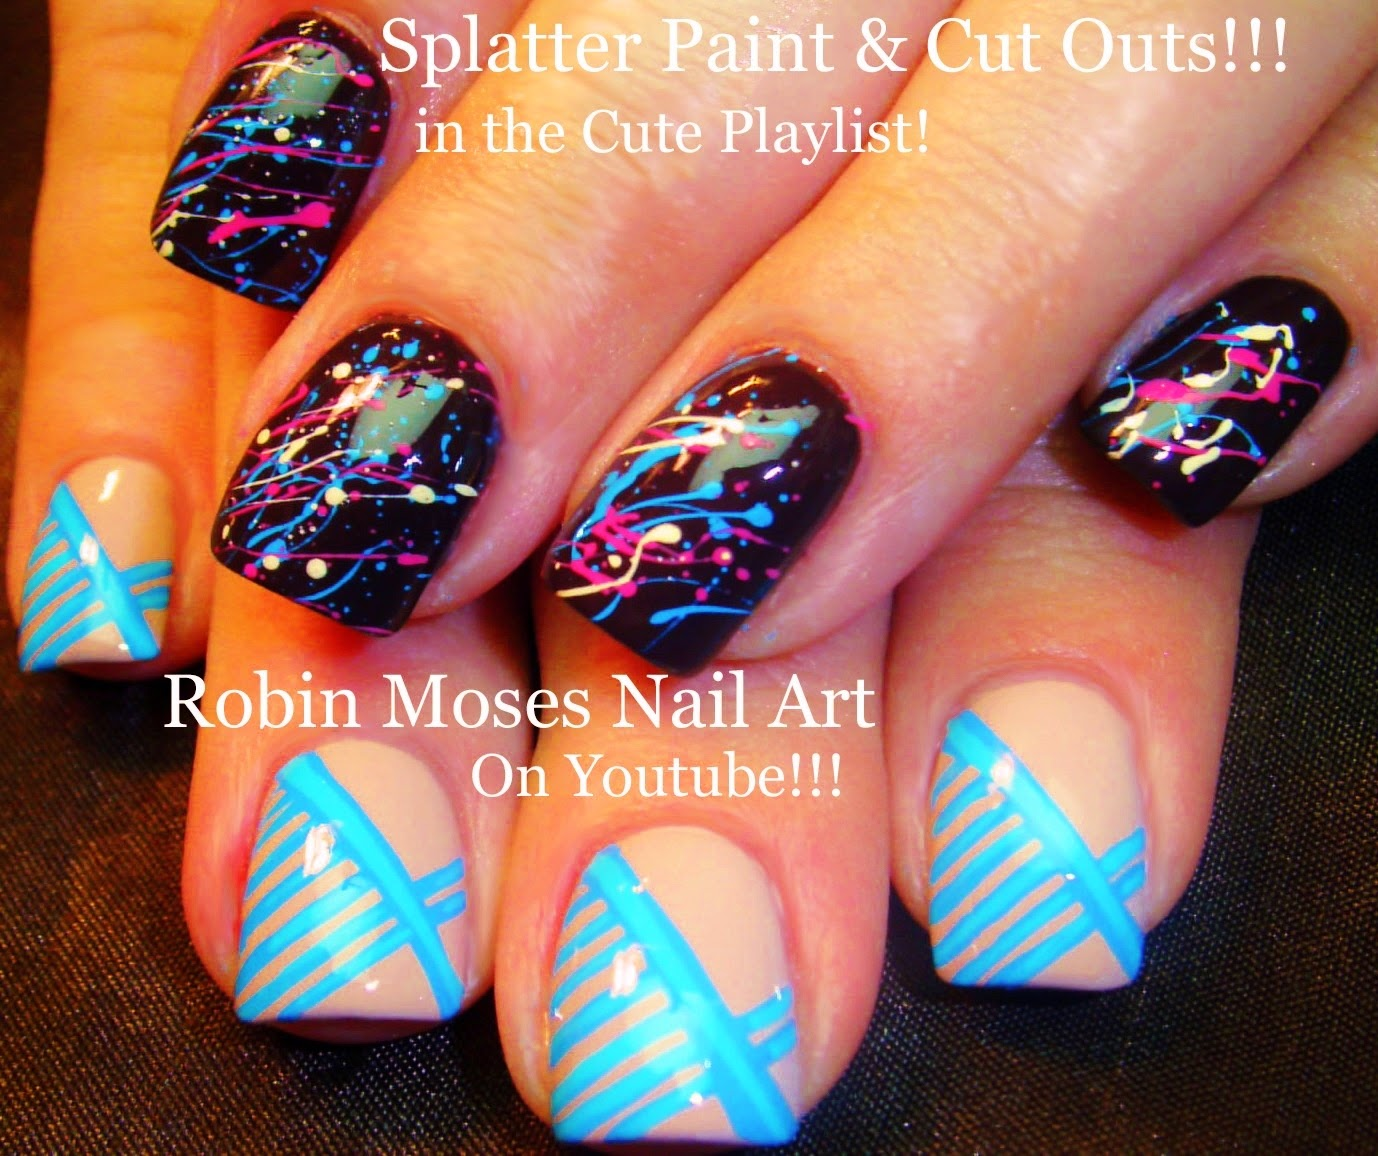 Nail Art By Robin Moses Splatter Paint Nail Art Technique With Blue